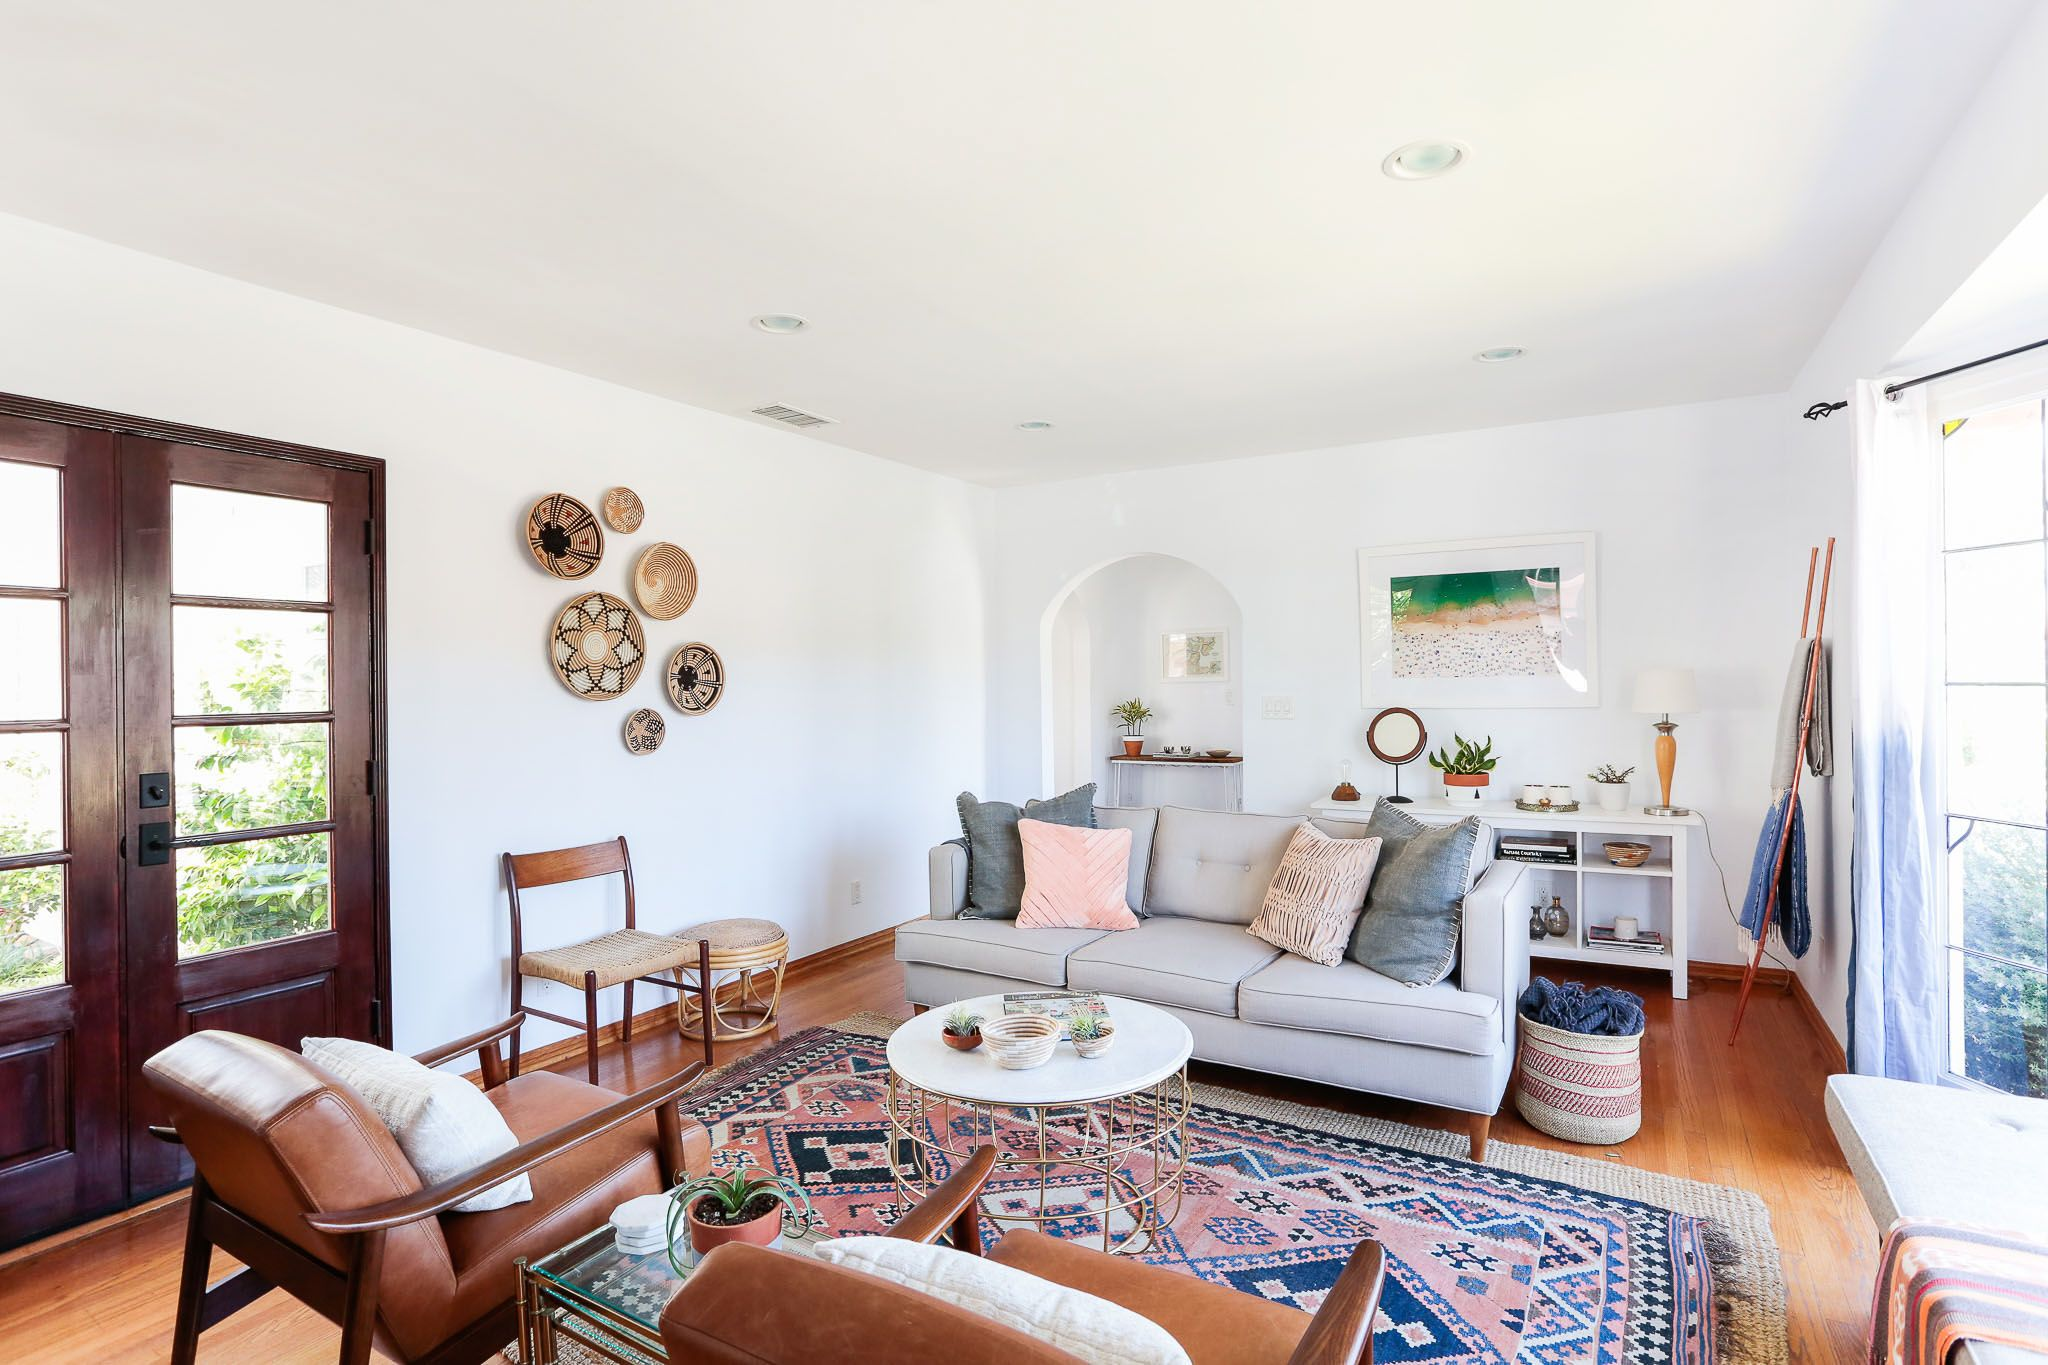 A Homepolish designer in Los Angeles decorated a Spanish-style home ...